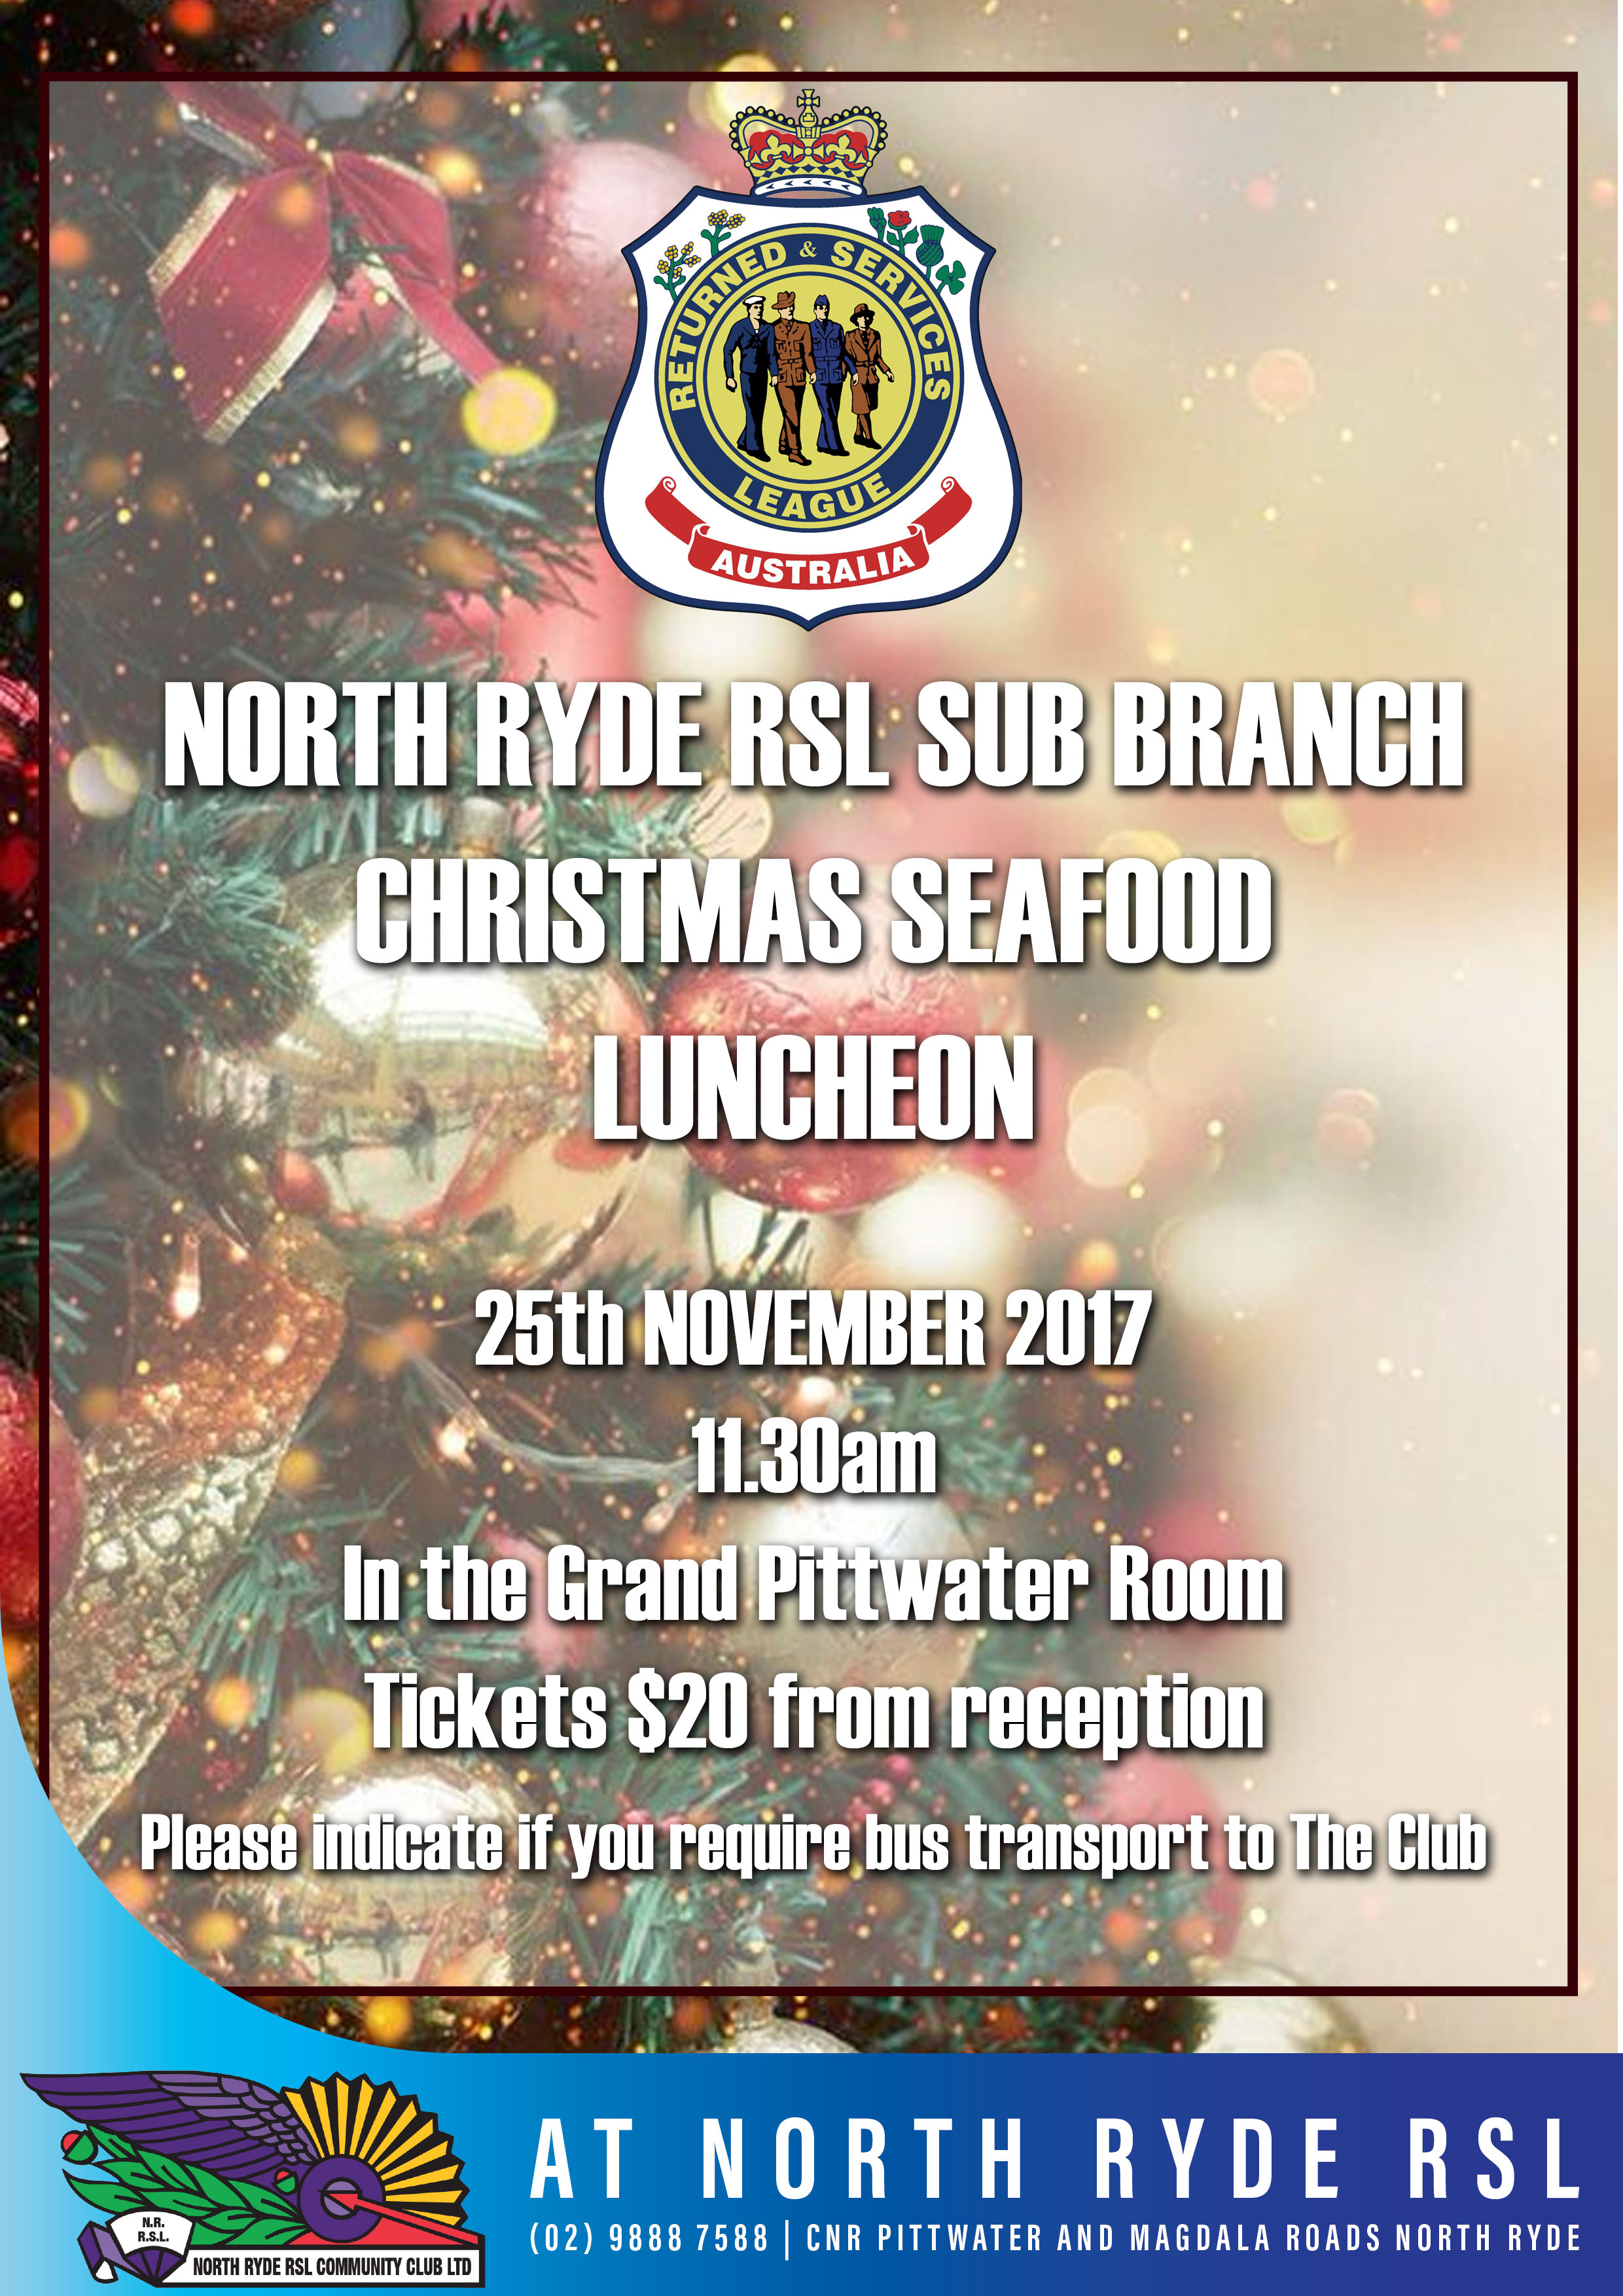 Christmas Luncheon 2017